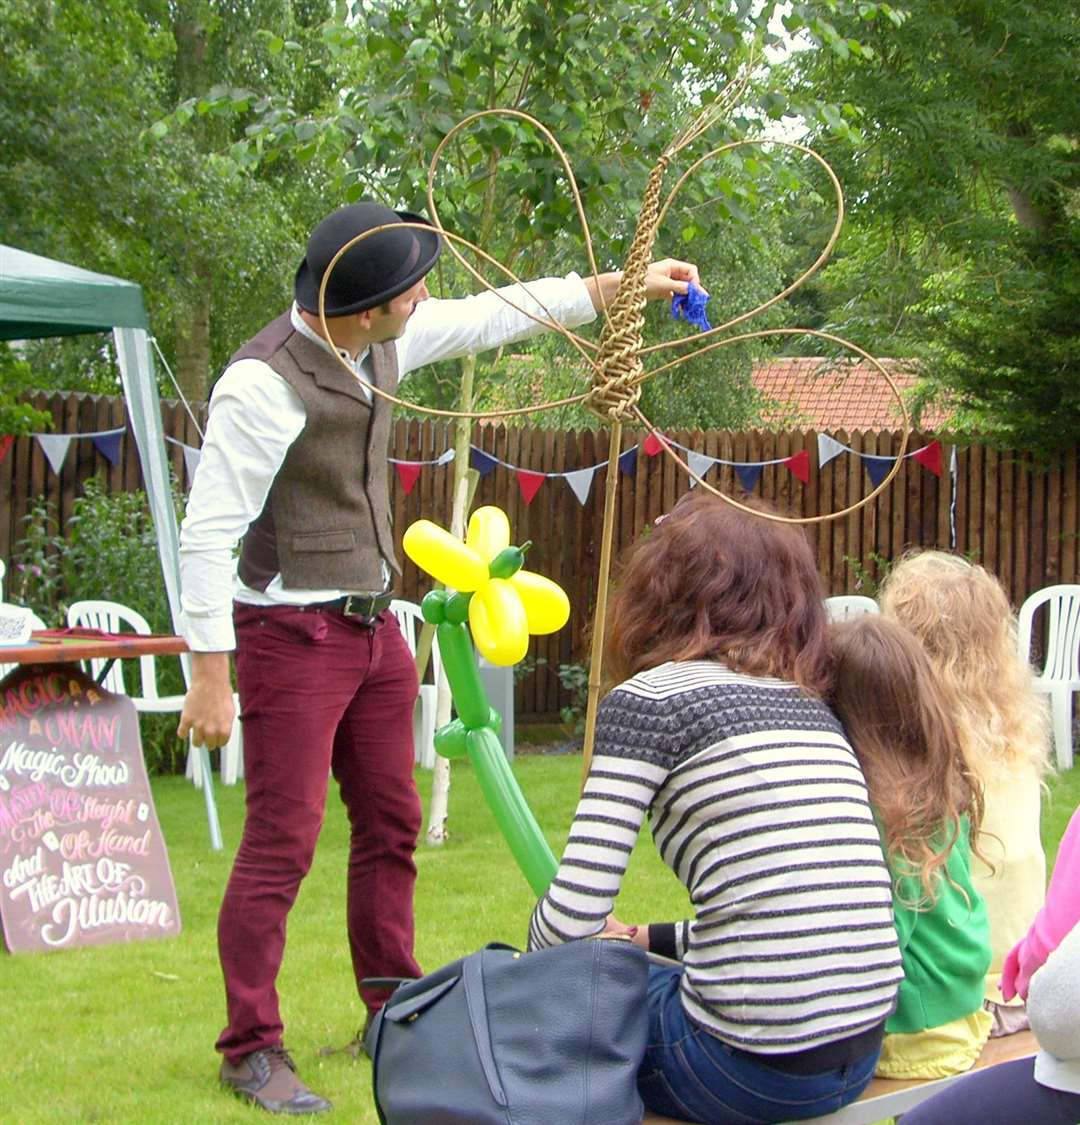 The Magic Man entertaining people at Clarer Priory Craft Fair (2782841)